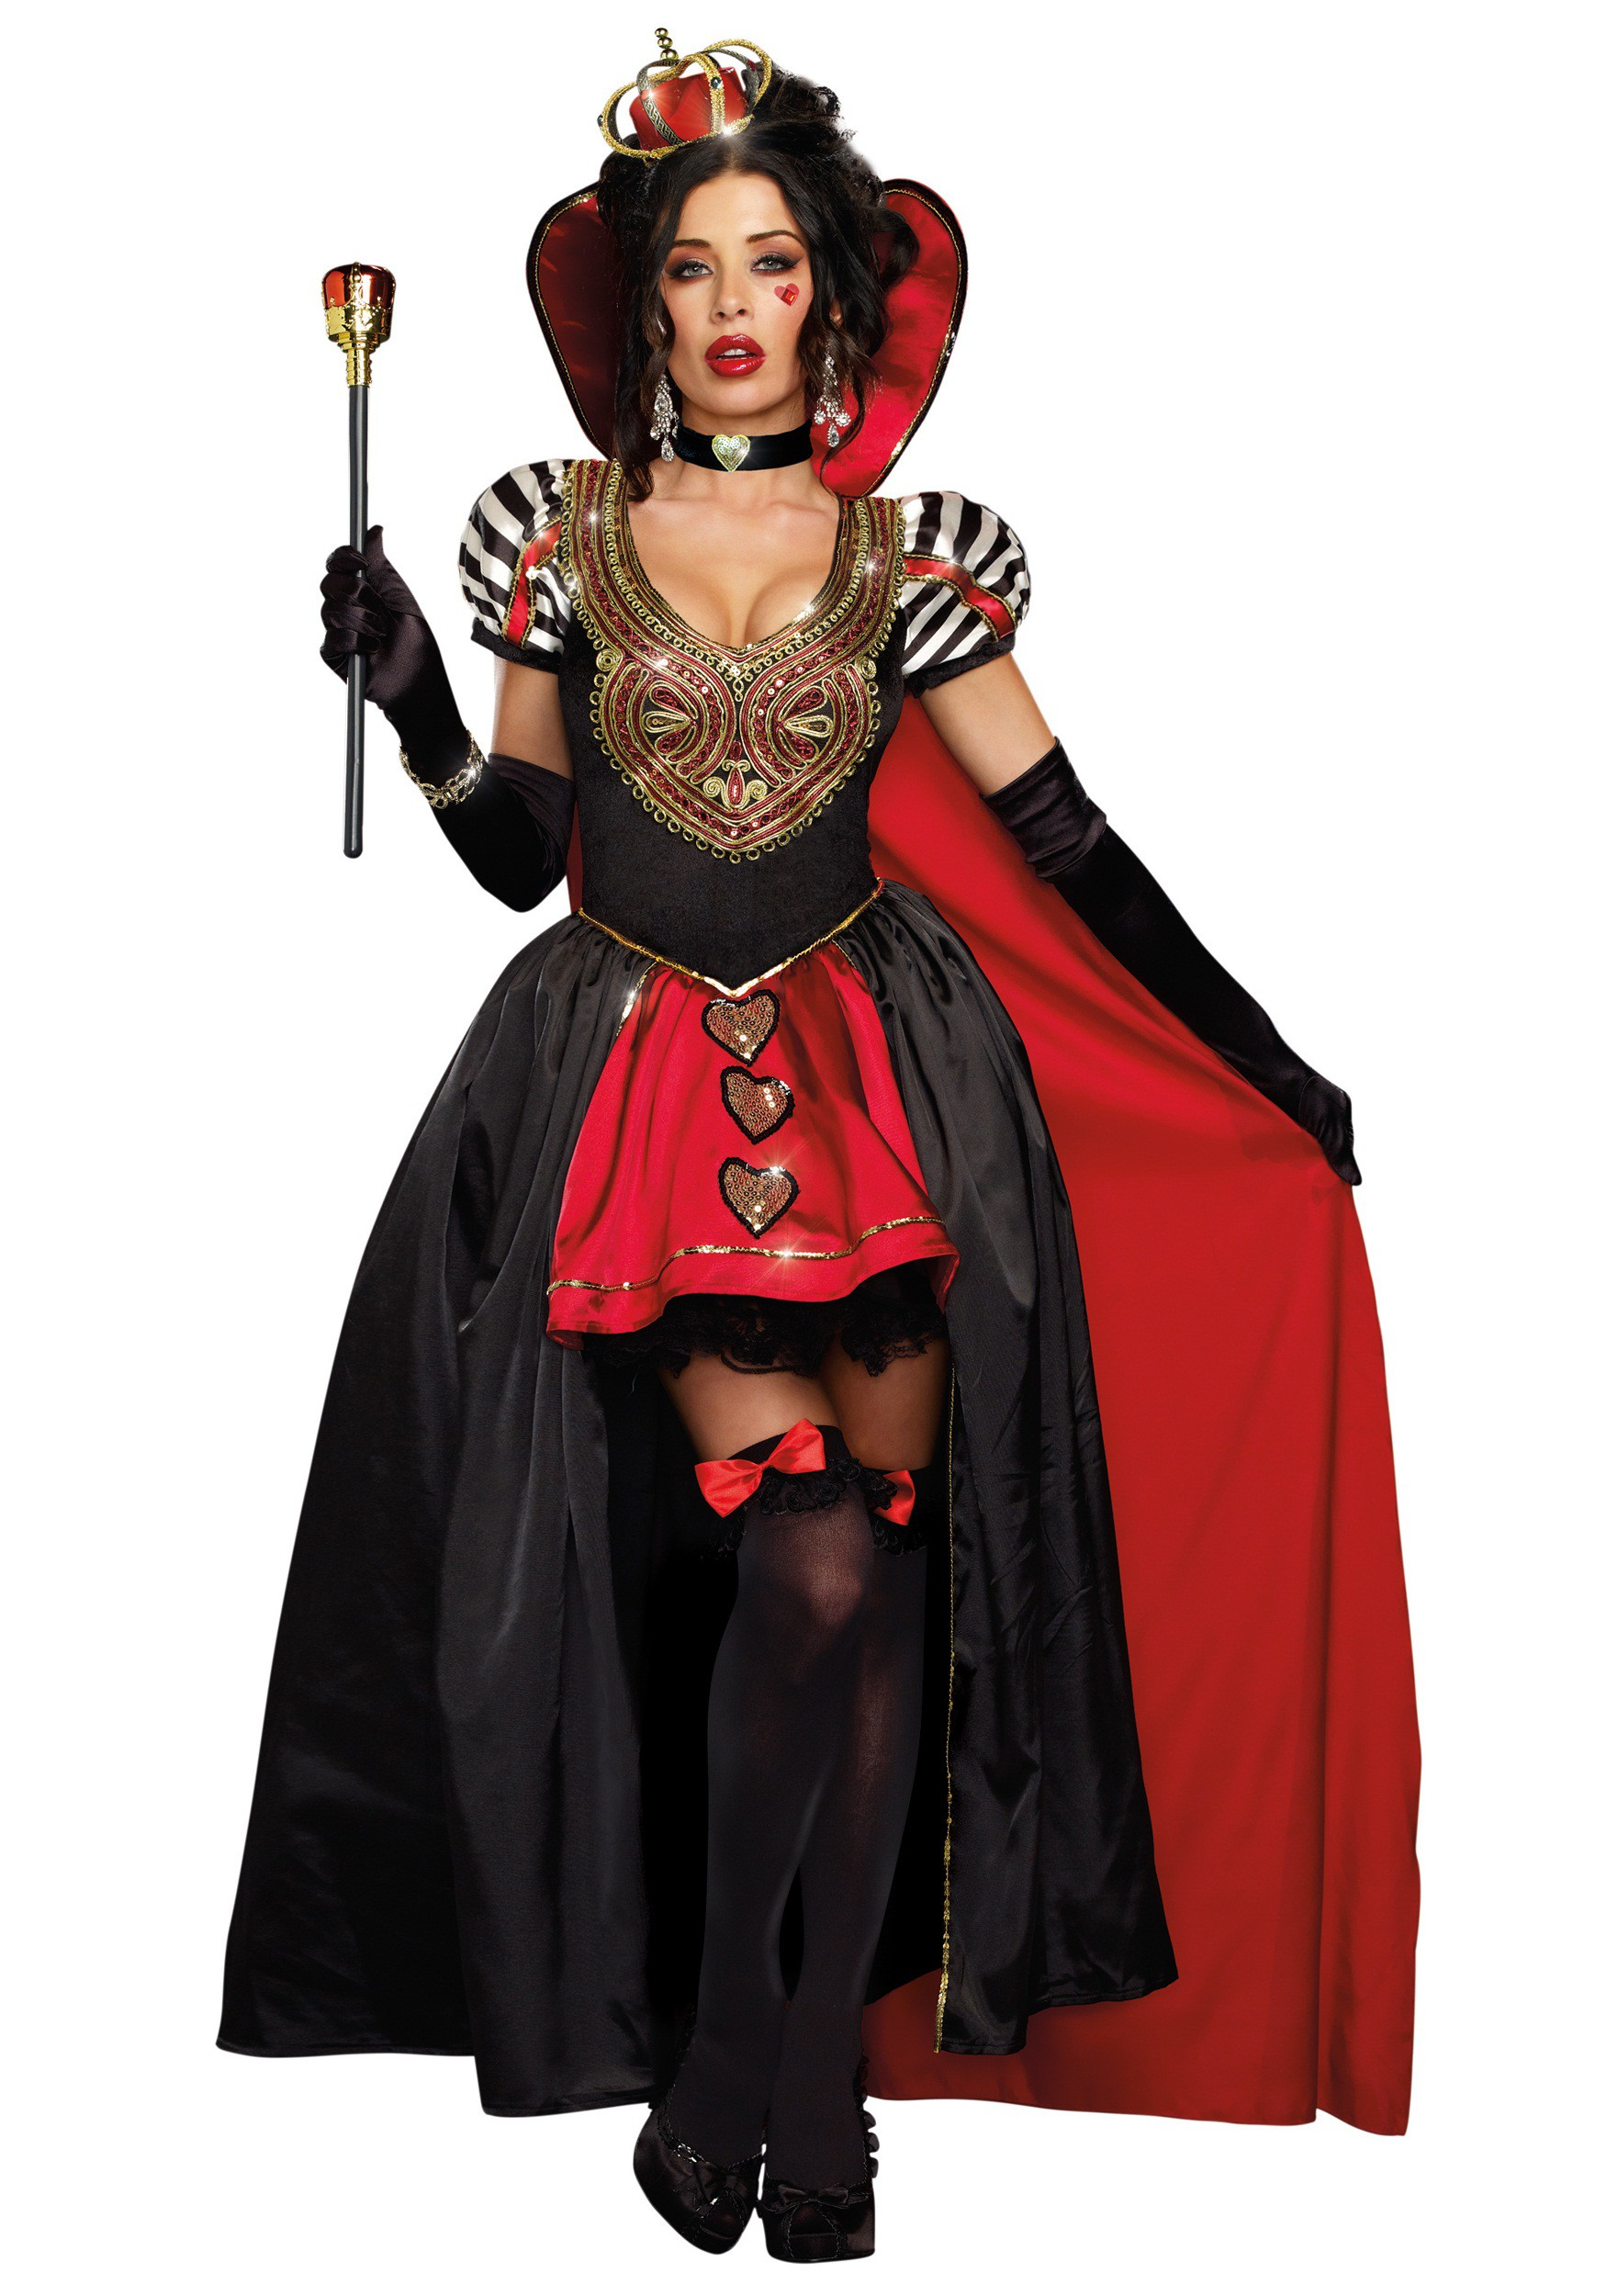 queen of hearts adult costume w cape. Black Bedroom Furniture Sets. Home Design Ideas